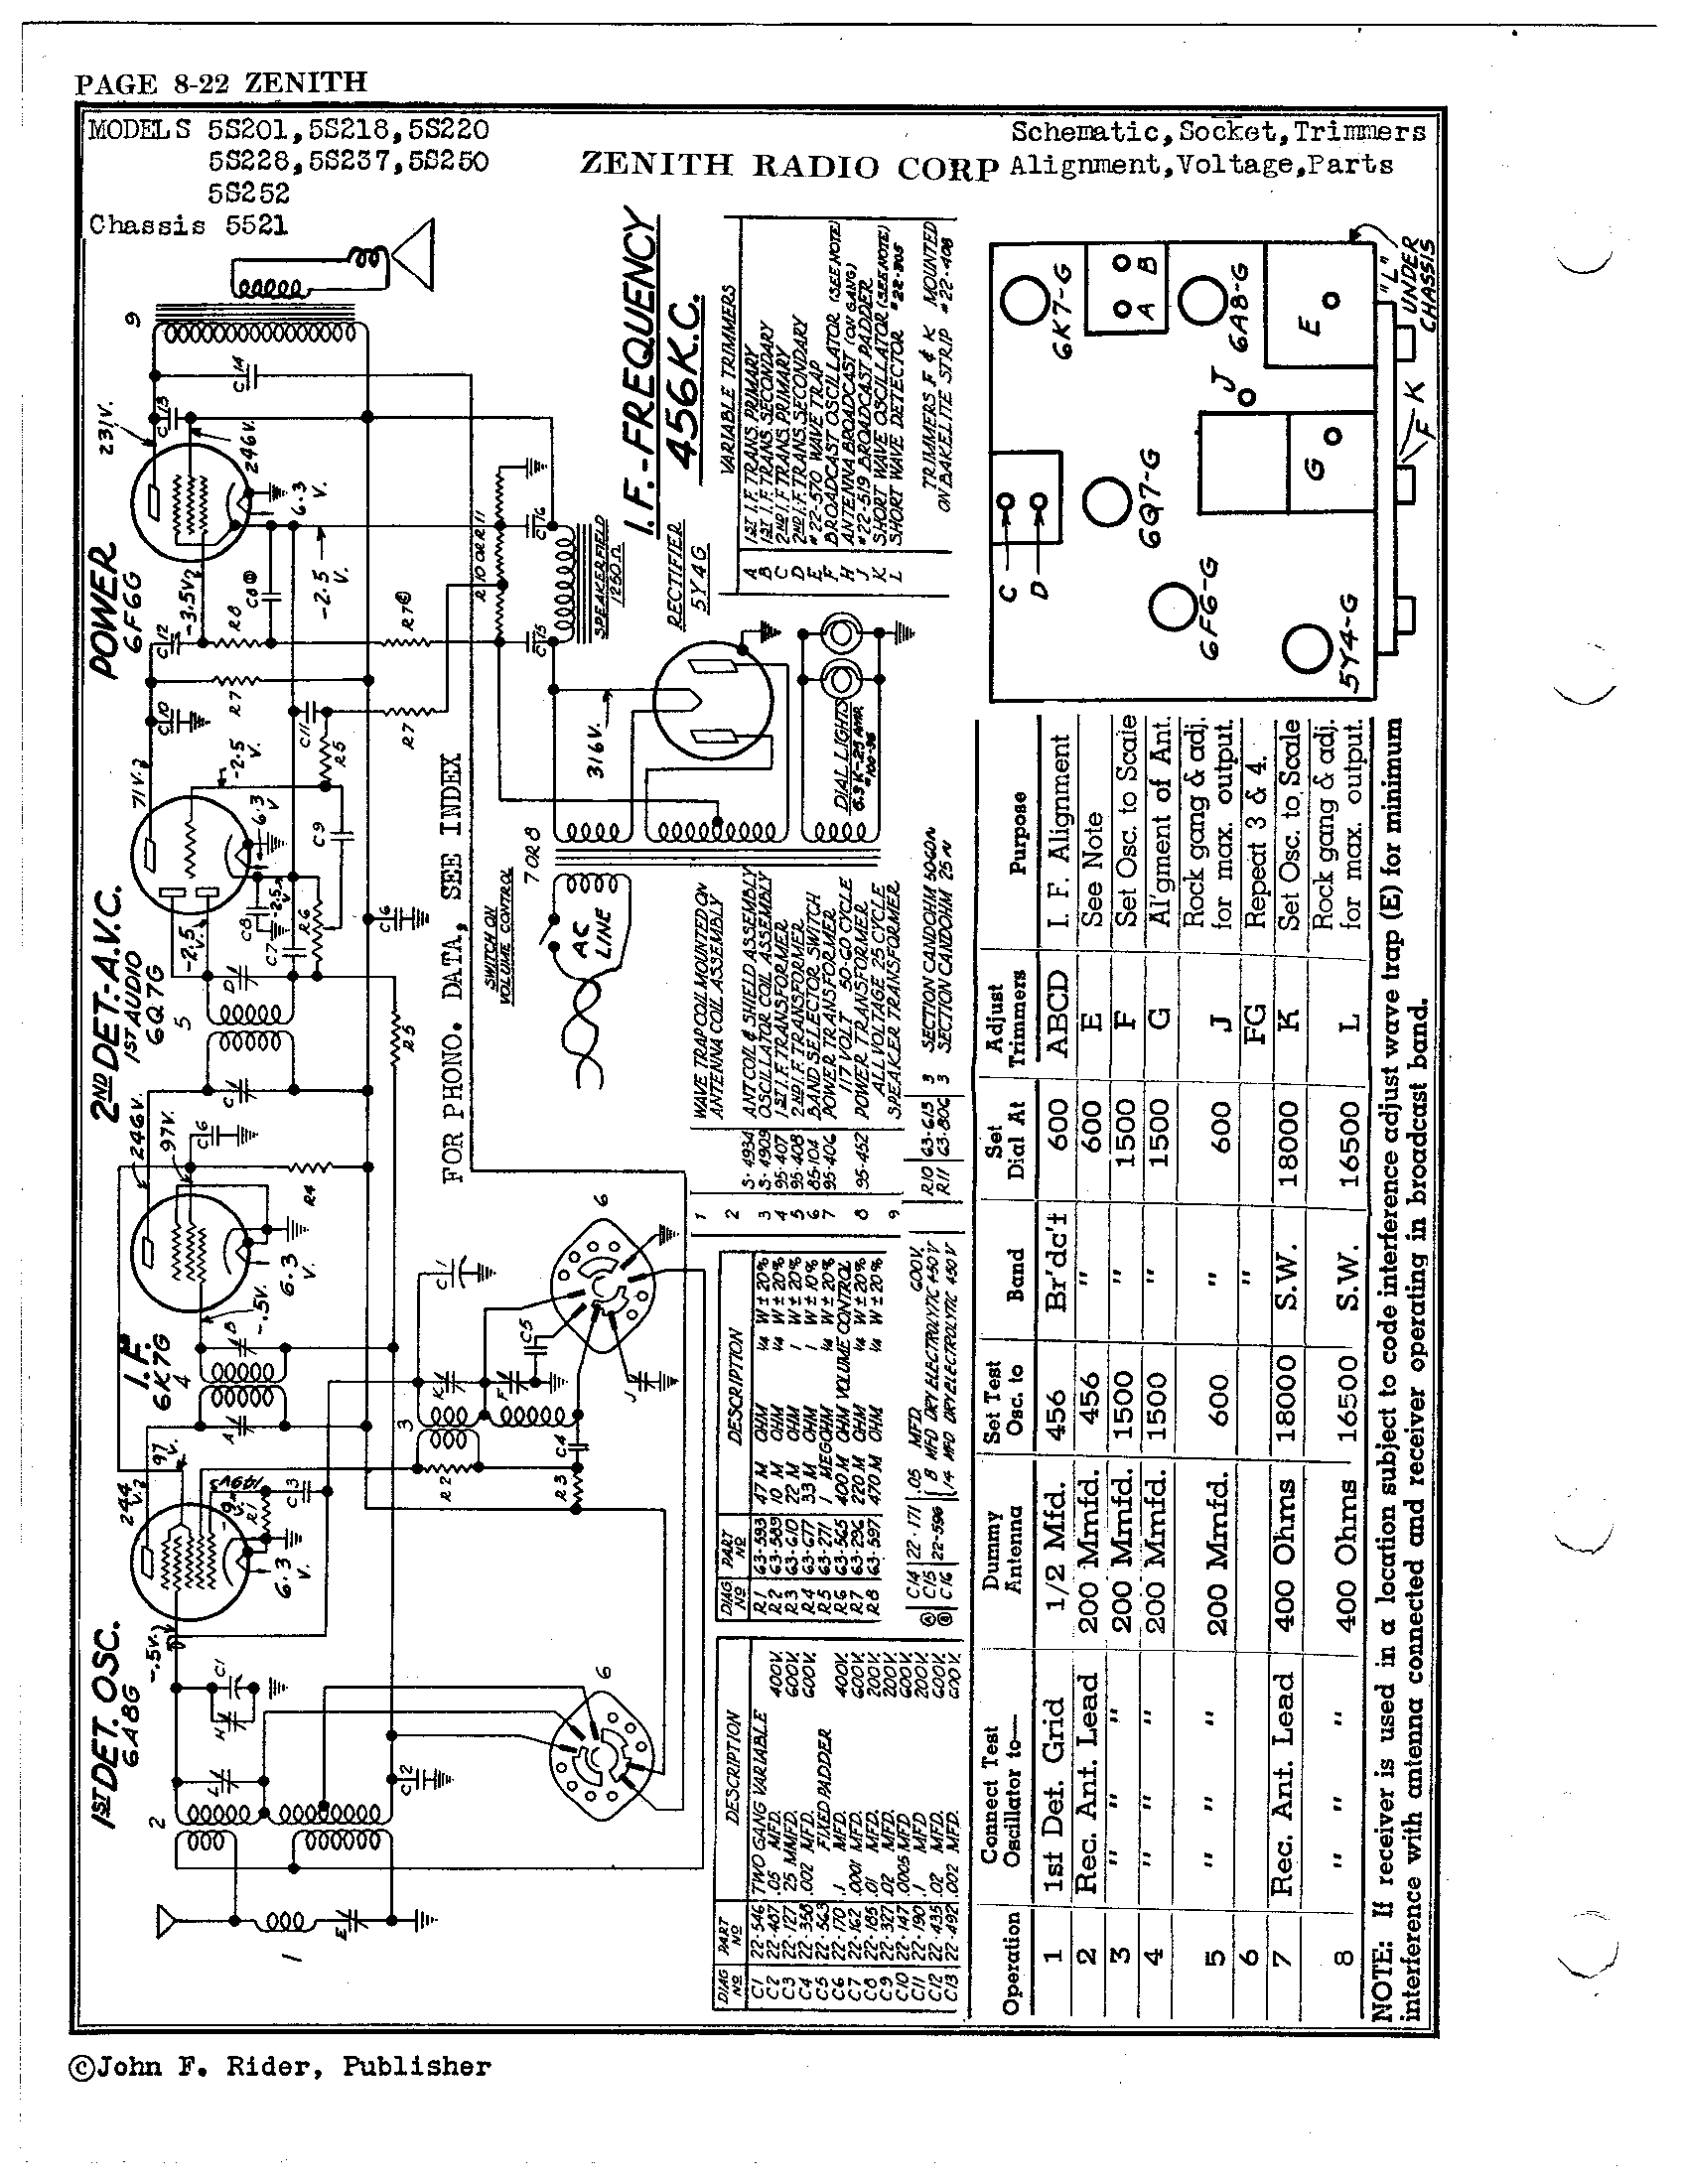 Zenith Schematics Wiring Library. Zenith Radio Corp 5s218 Antique Electronic Supply Schematic Pages. Wiring. Zenith Tube Clock Radio Schematics At Scoala.co